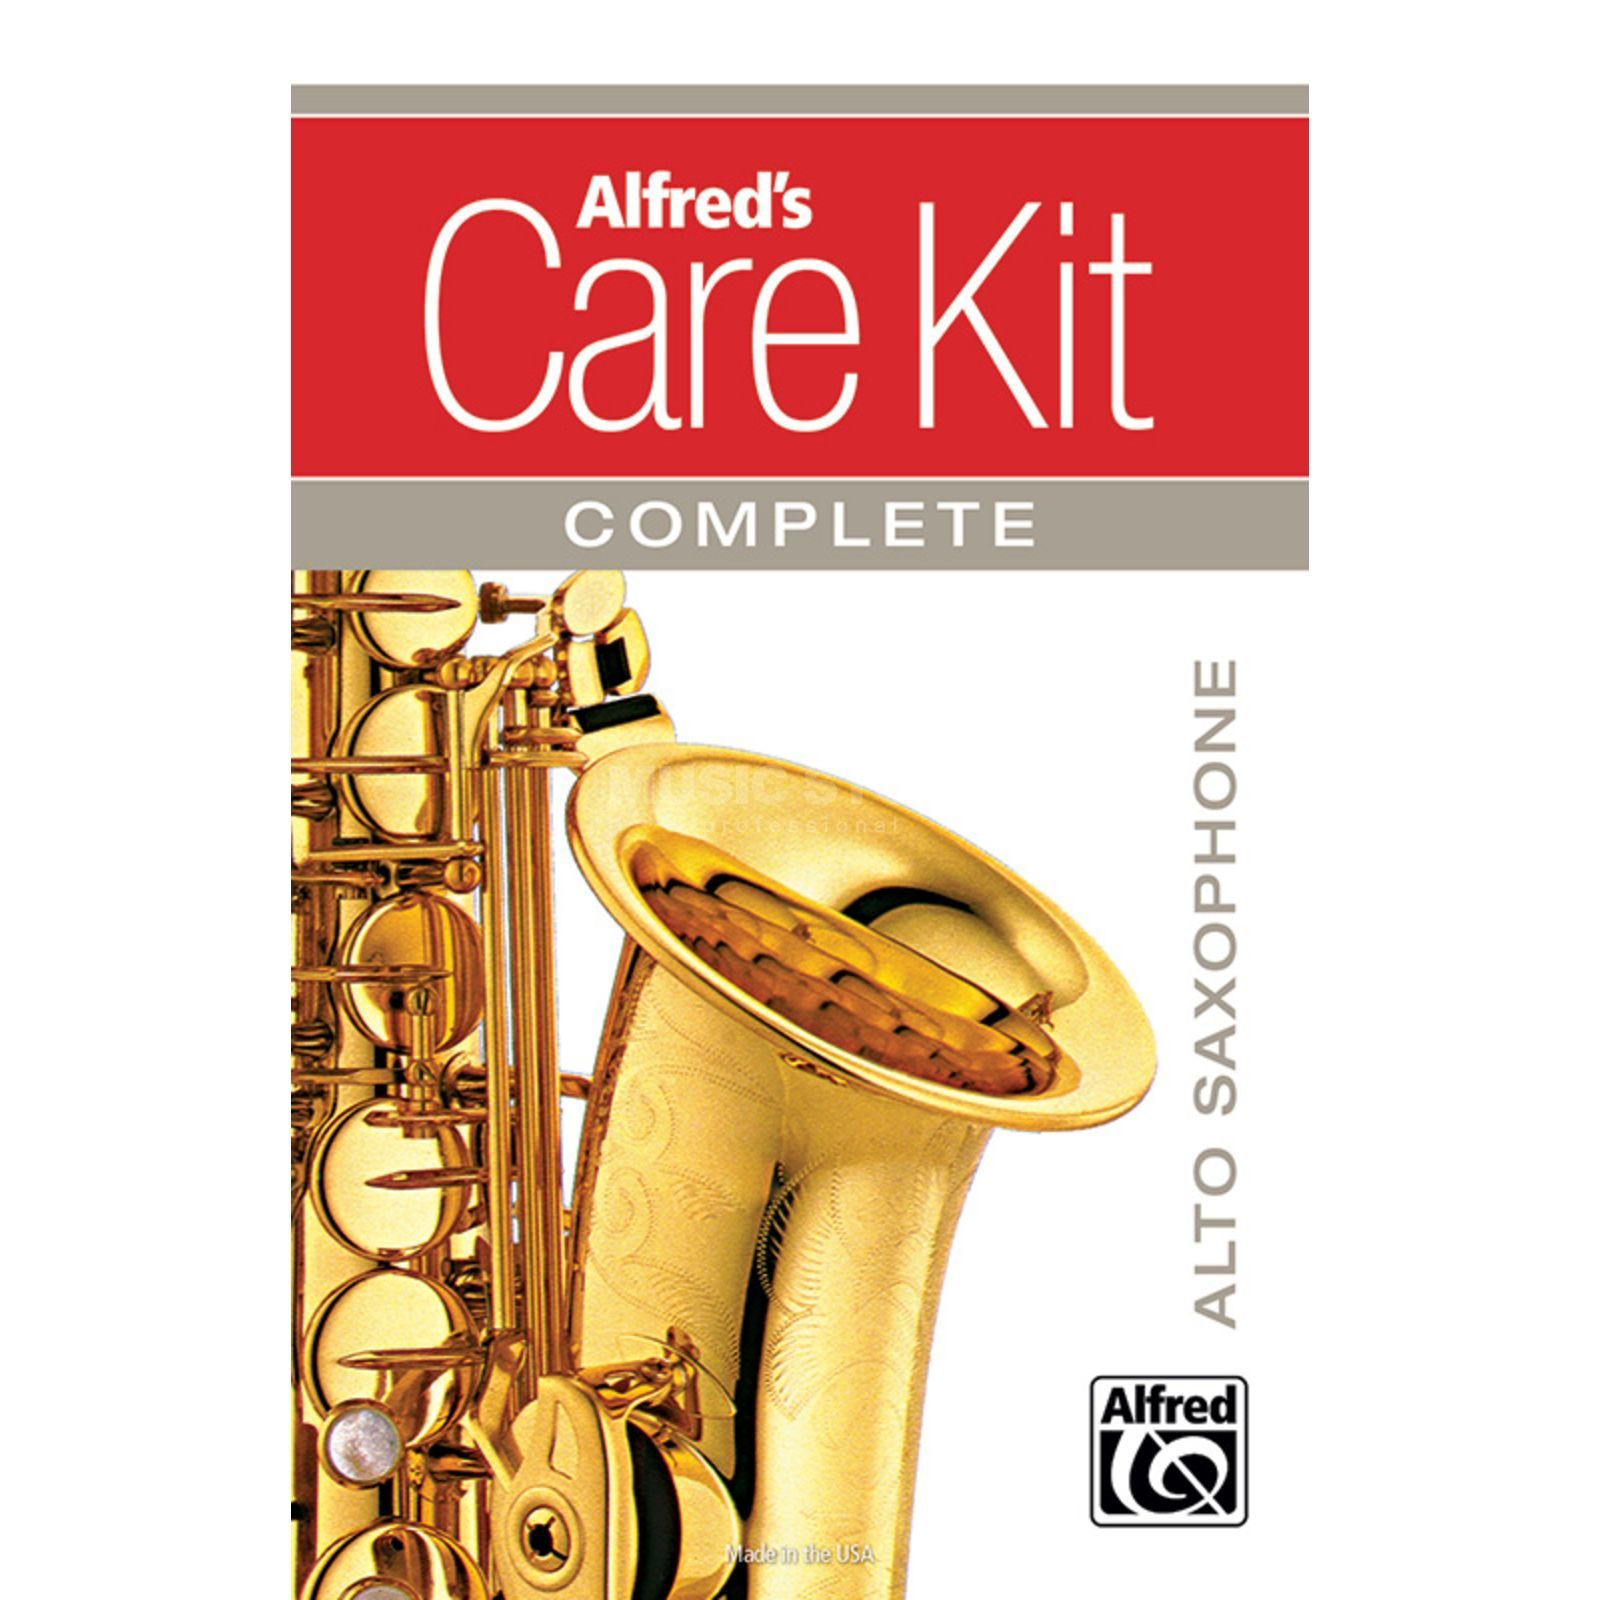 Alfred Music Care Kit Complete: Alt-Sax  Imagen del producto